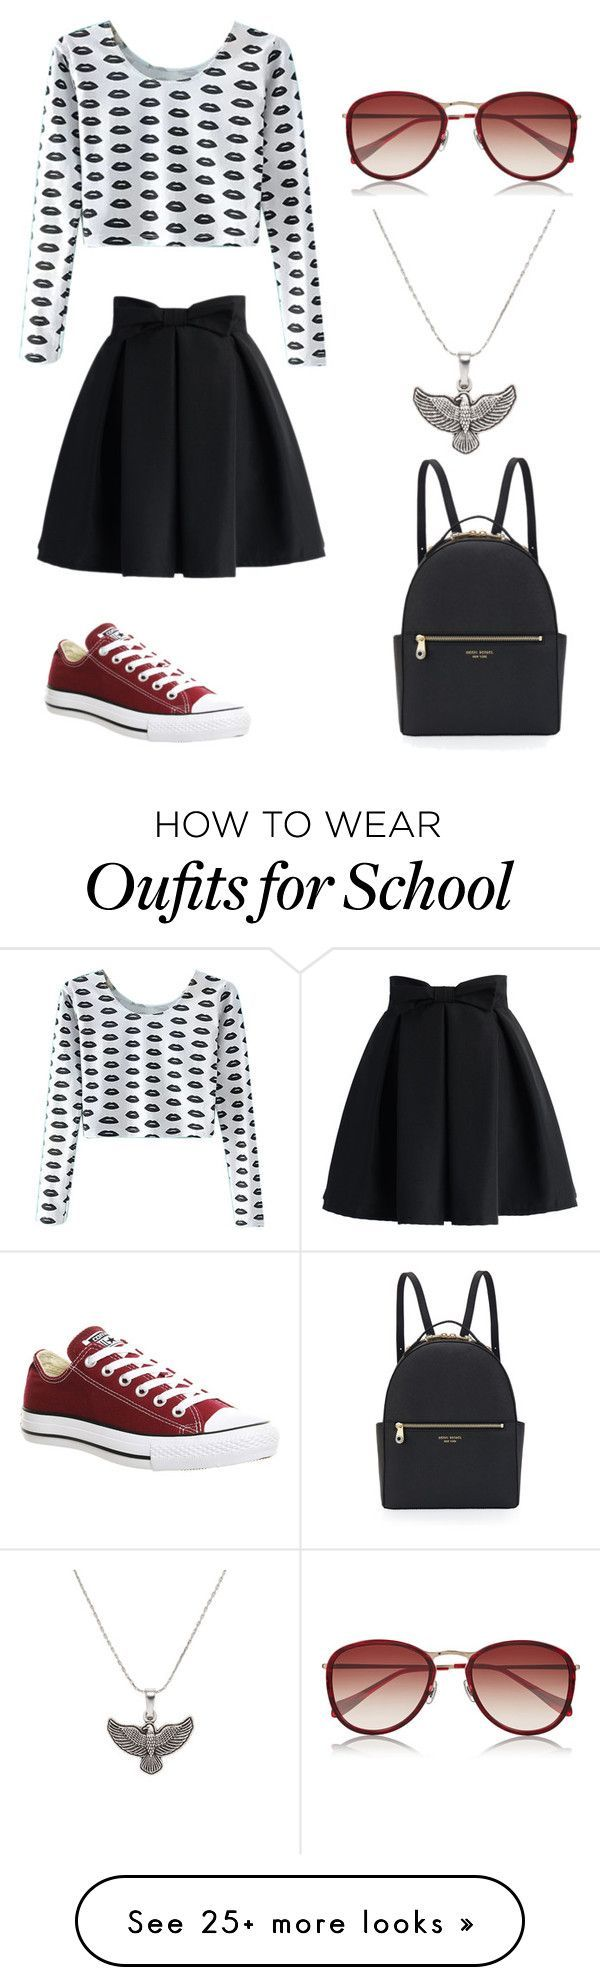 """School #3"" by penguin-alert on Polyvore featuring Chicwish, Henri Bendel, Converse, Oliver Peoples and Alex and Ani"